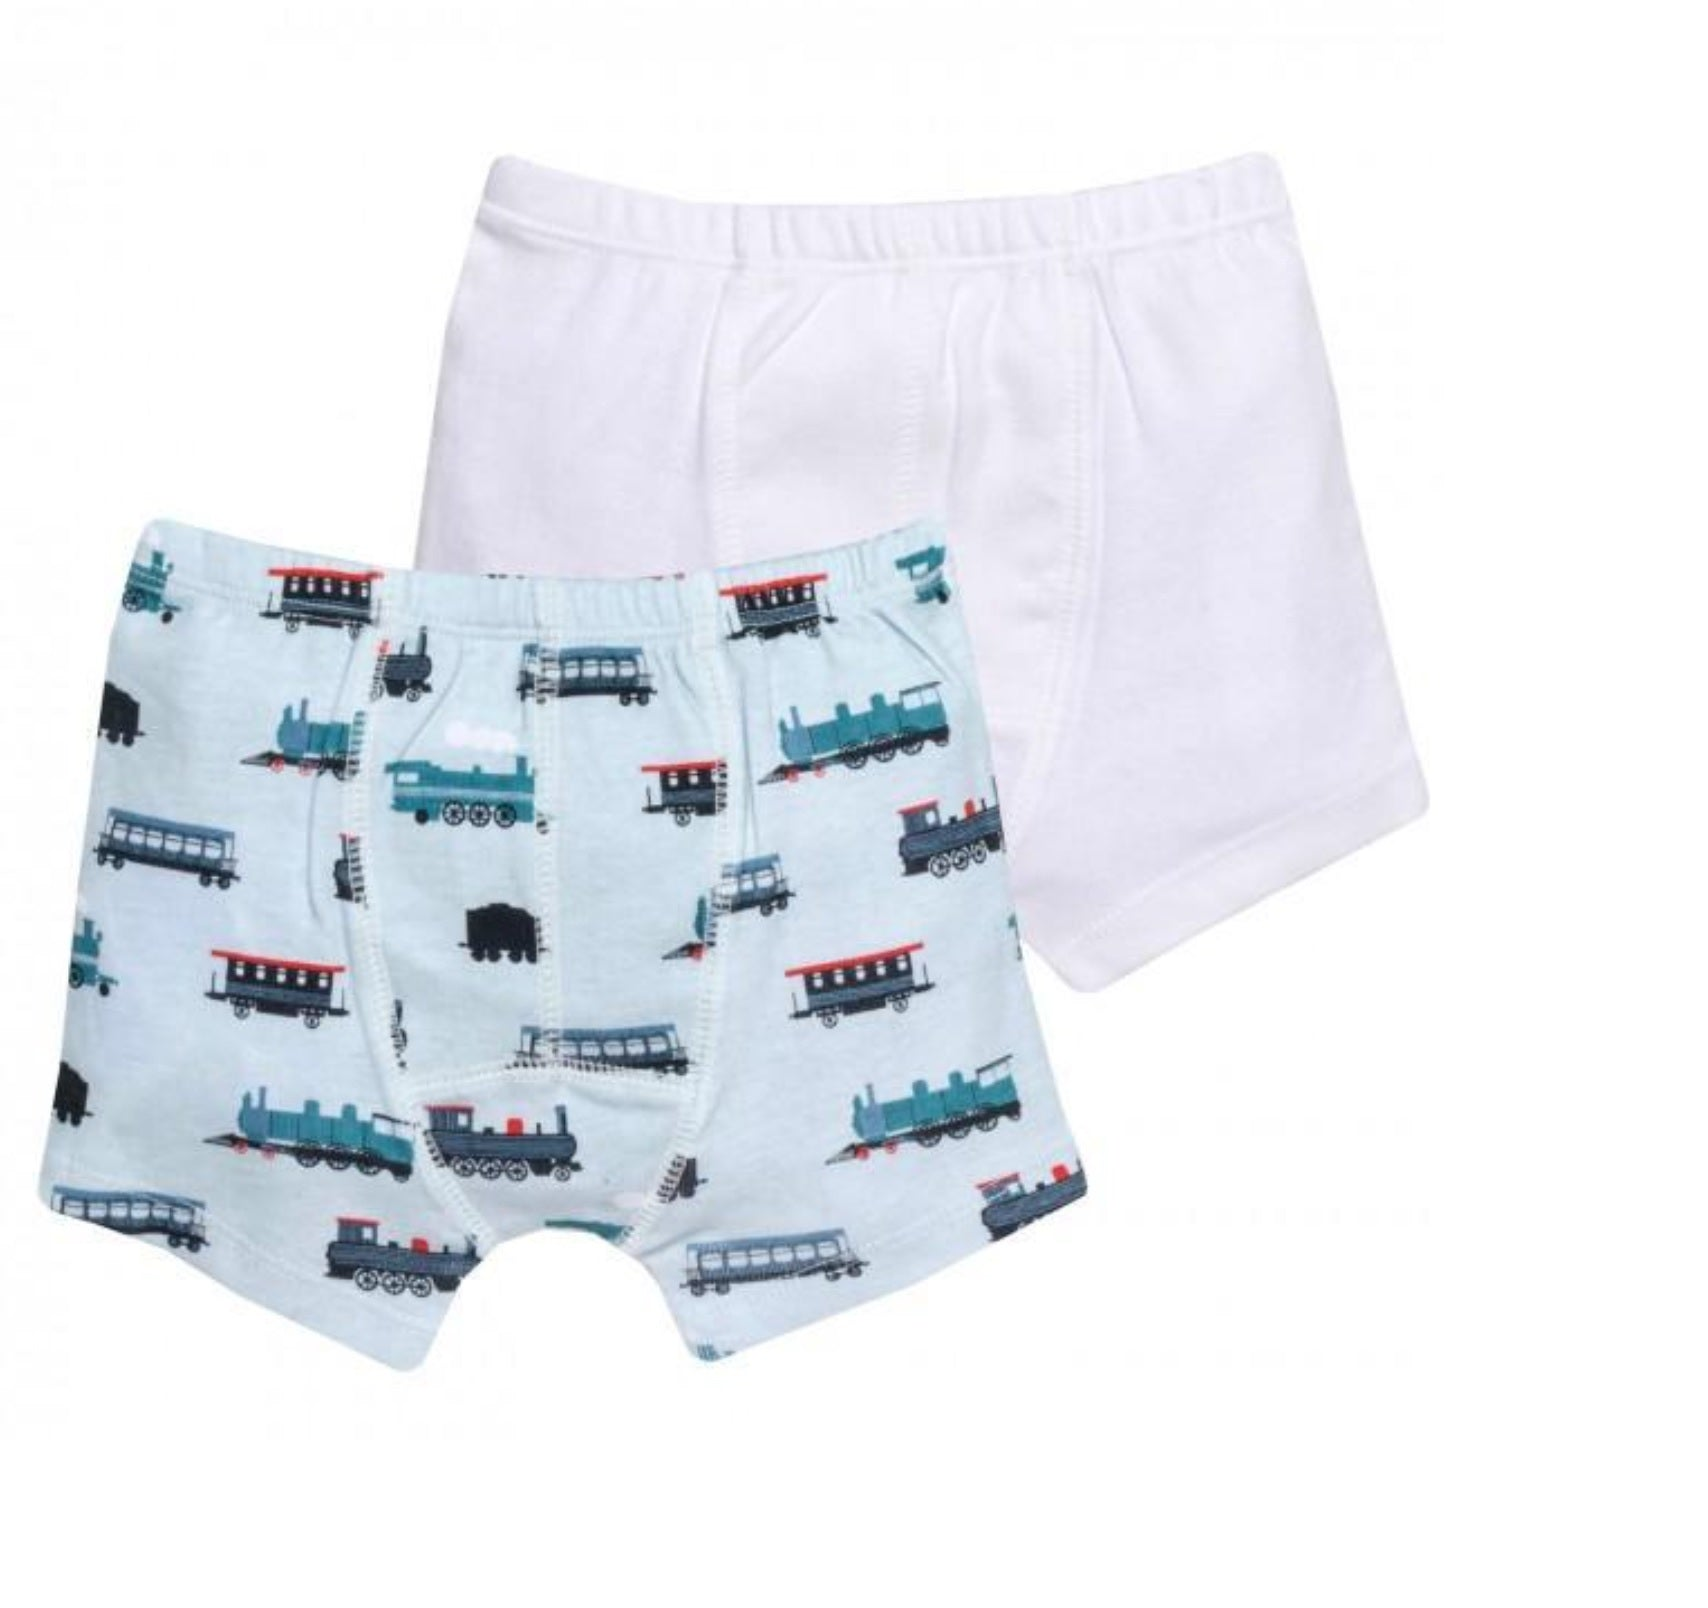 Underwear - Trains